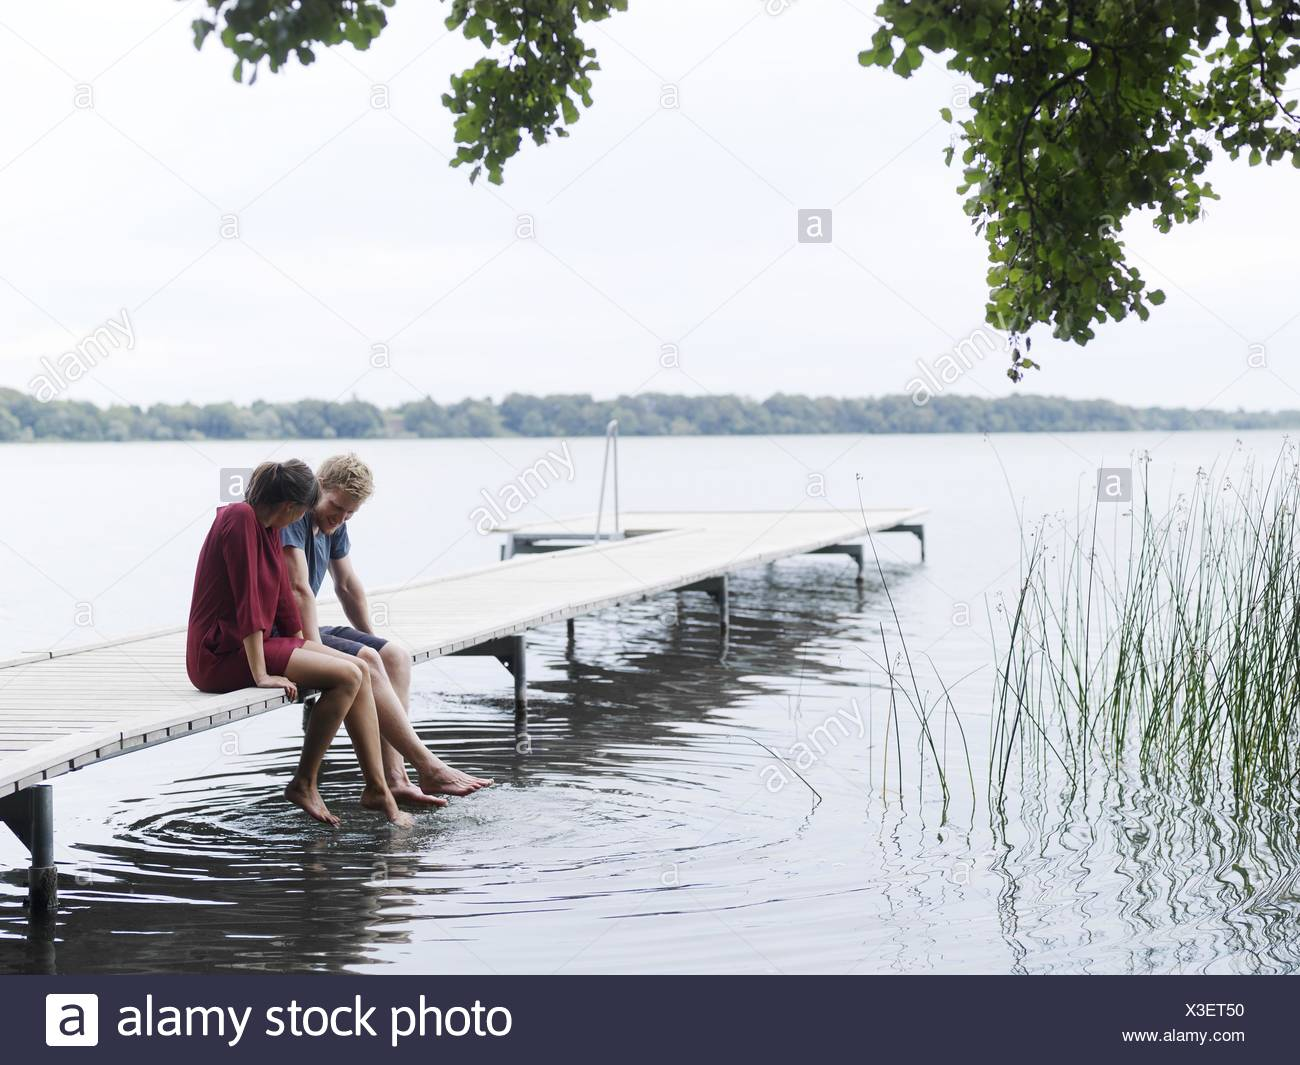 Couple sitting on pier side by side dipping toes in water, Copenhagen, Denmark - Stock Image